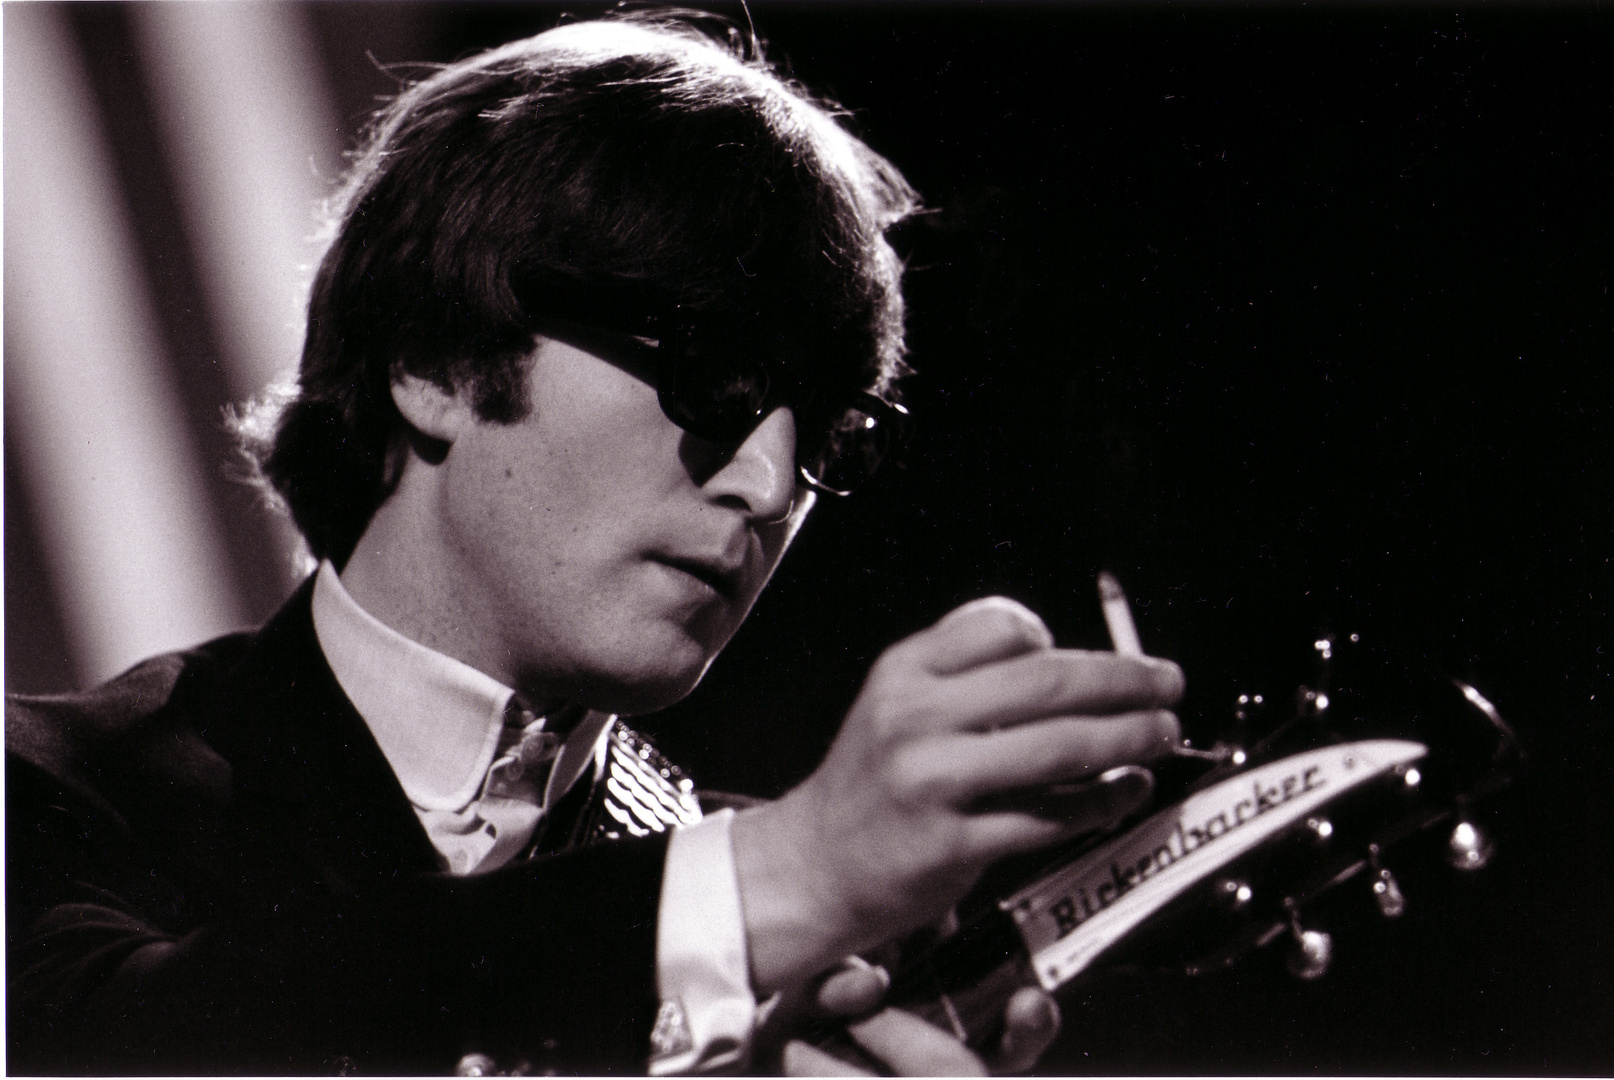 Me & My Rickenbacker, Lennon, Teddington, 1965